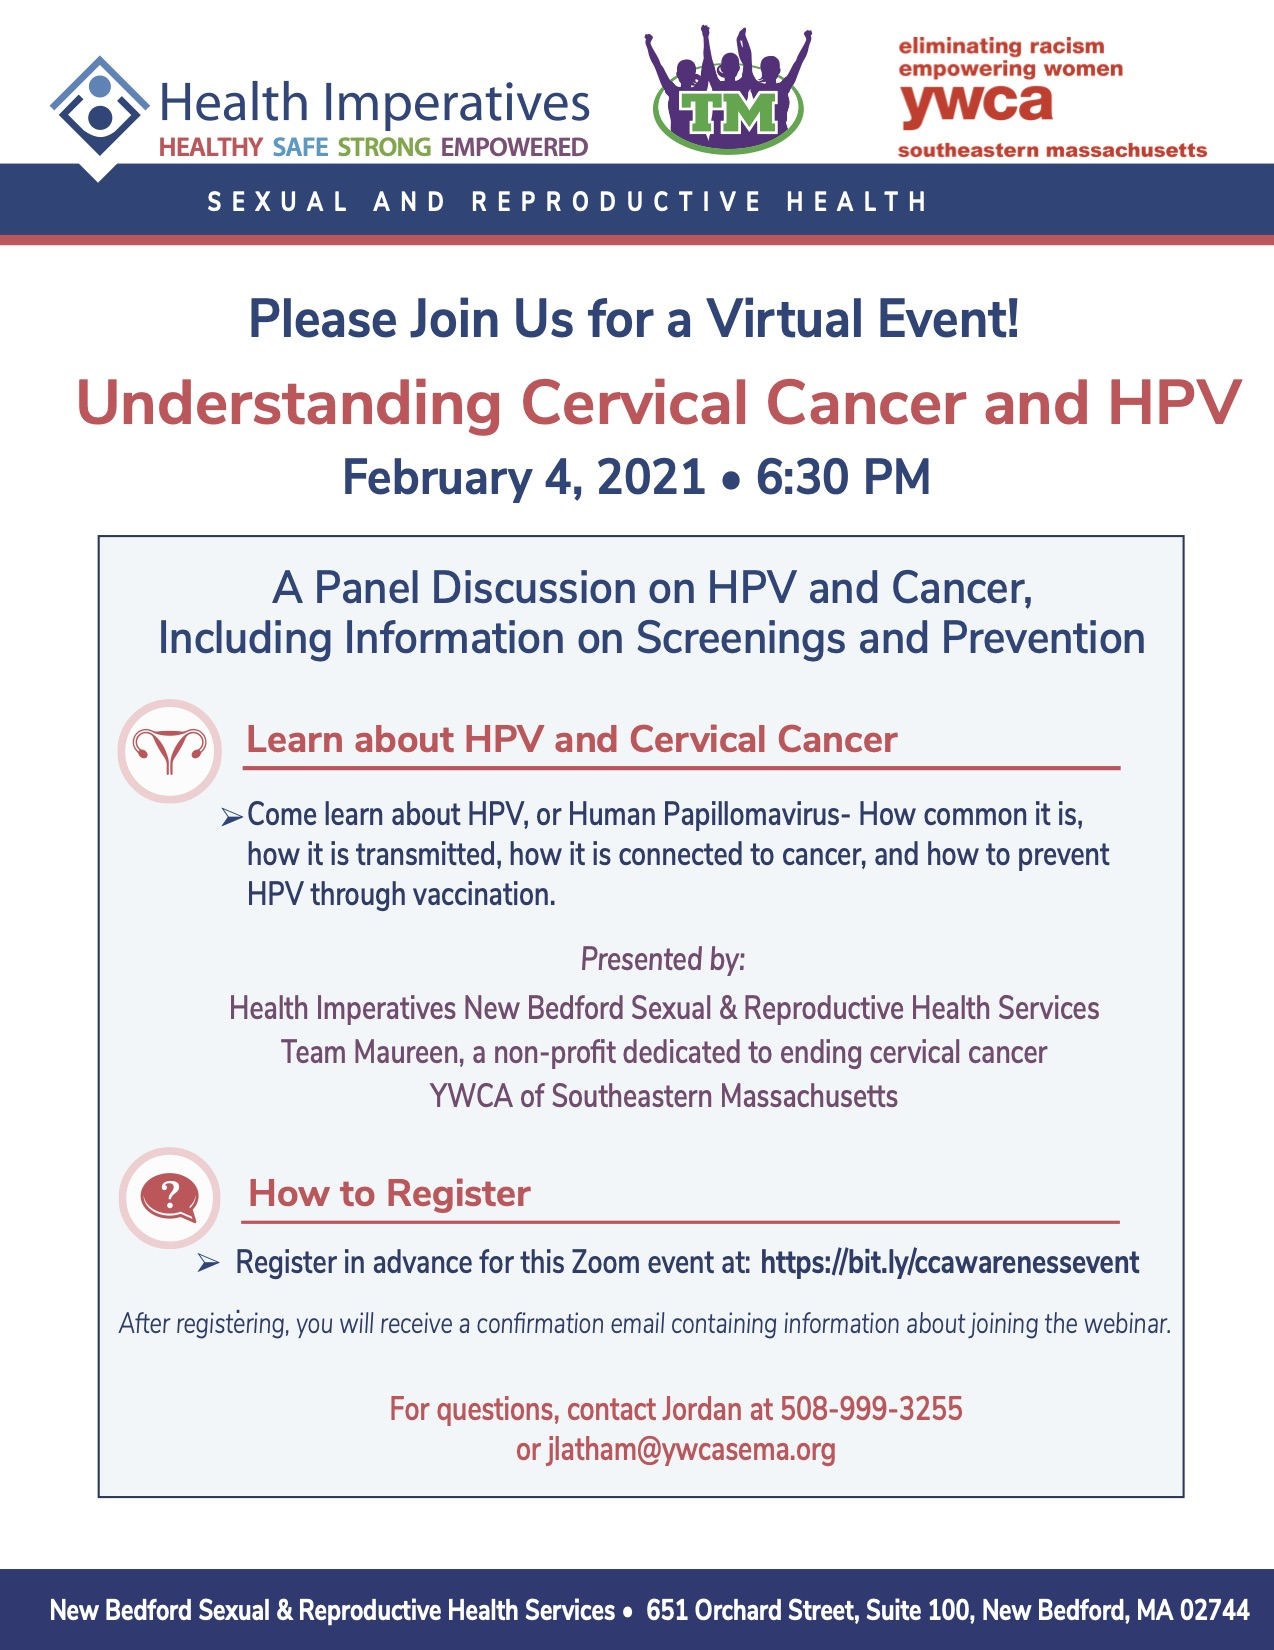 Cervical Cancer HPV Panel Flyer 1.21.2021 HRP RH ADD